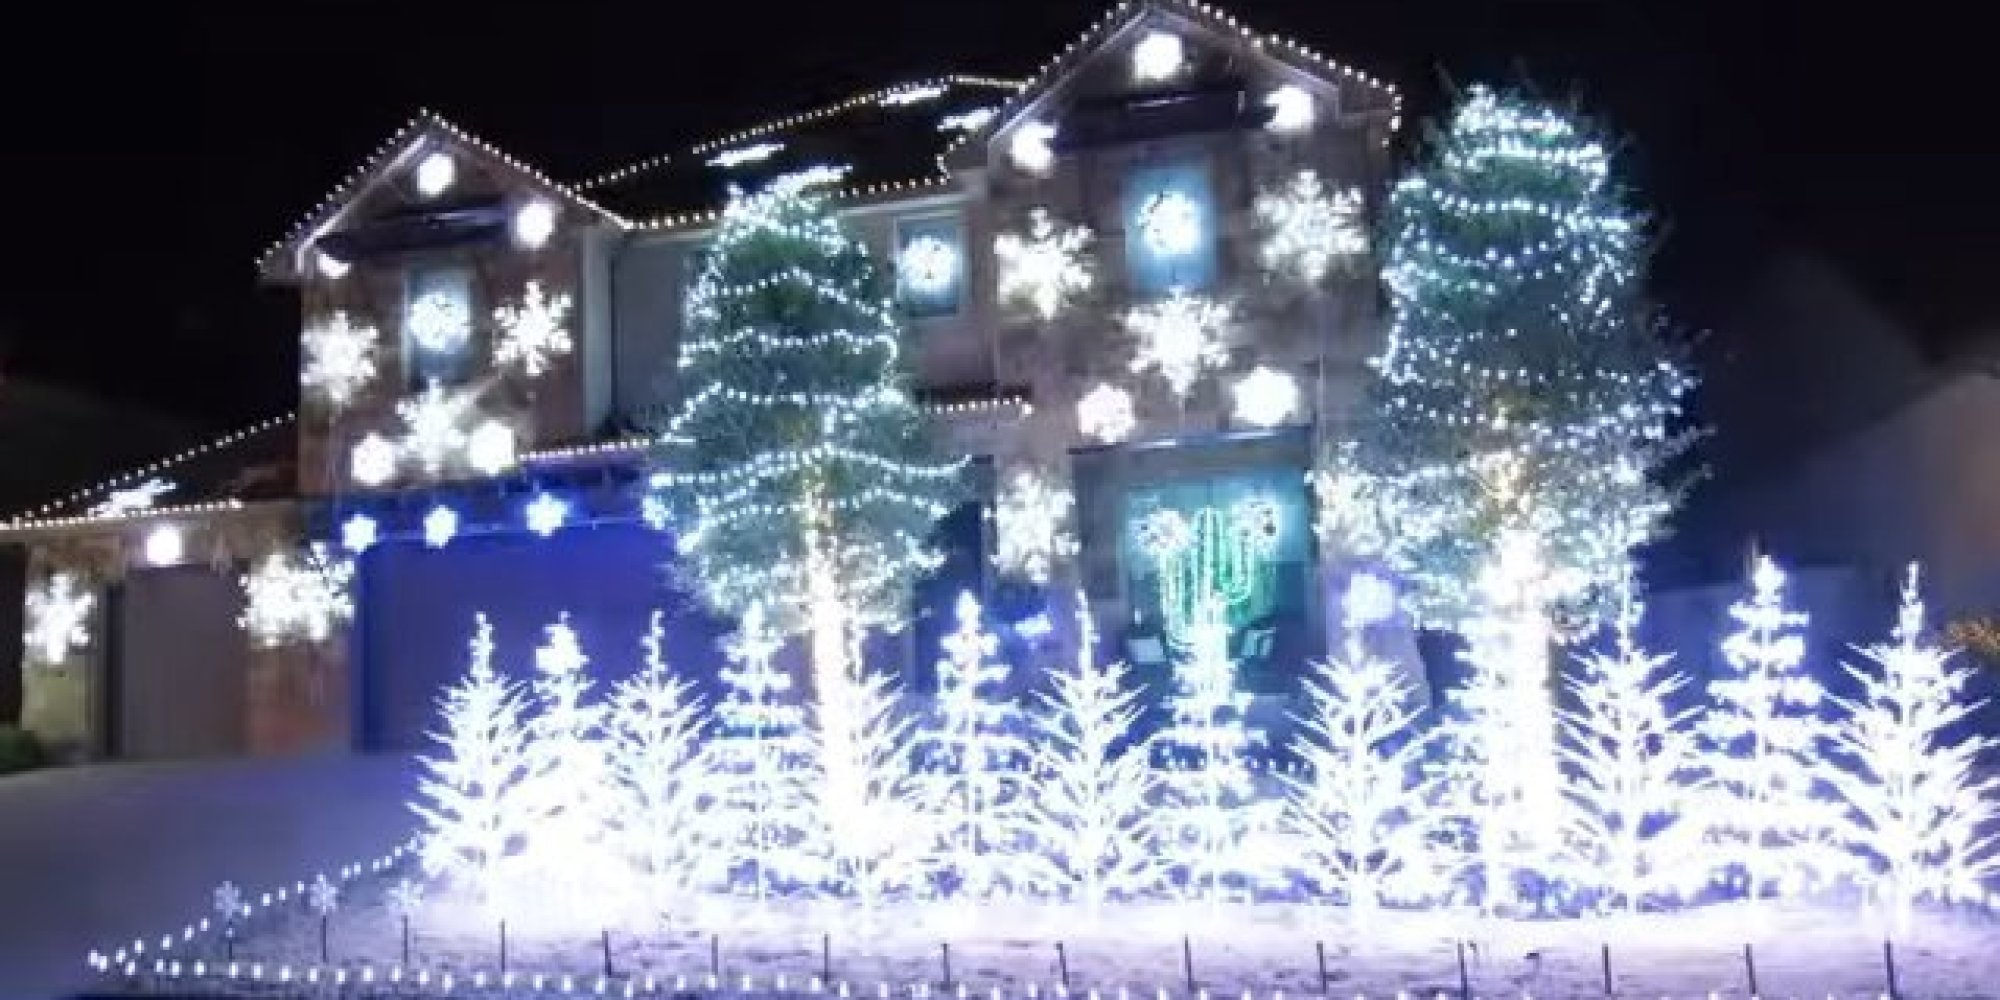 Projecteur Led Exterieur 'let It Go' Christmas Light Display Is So Cool, It Will